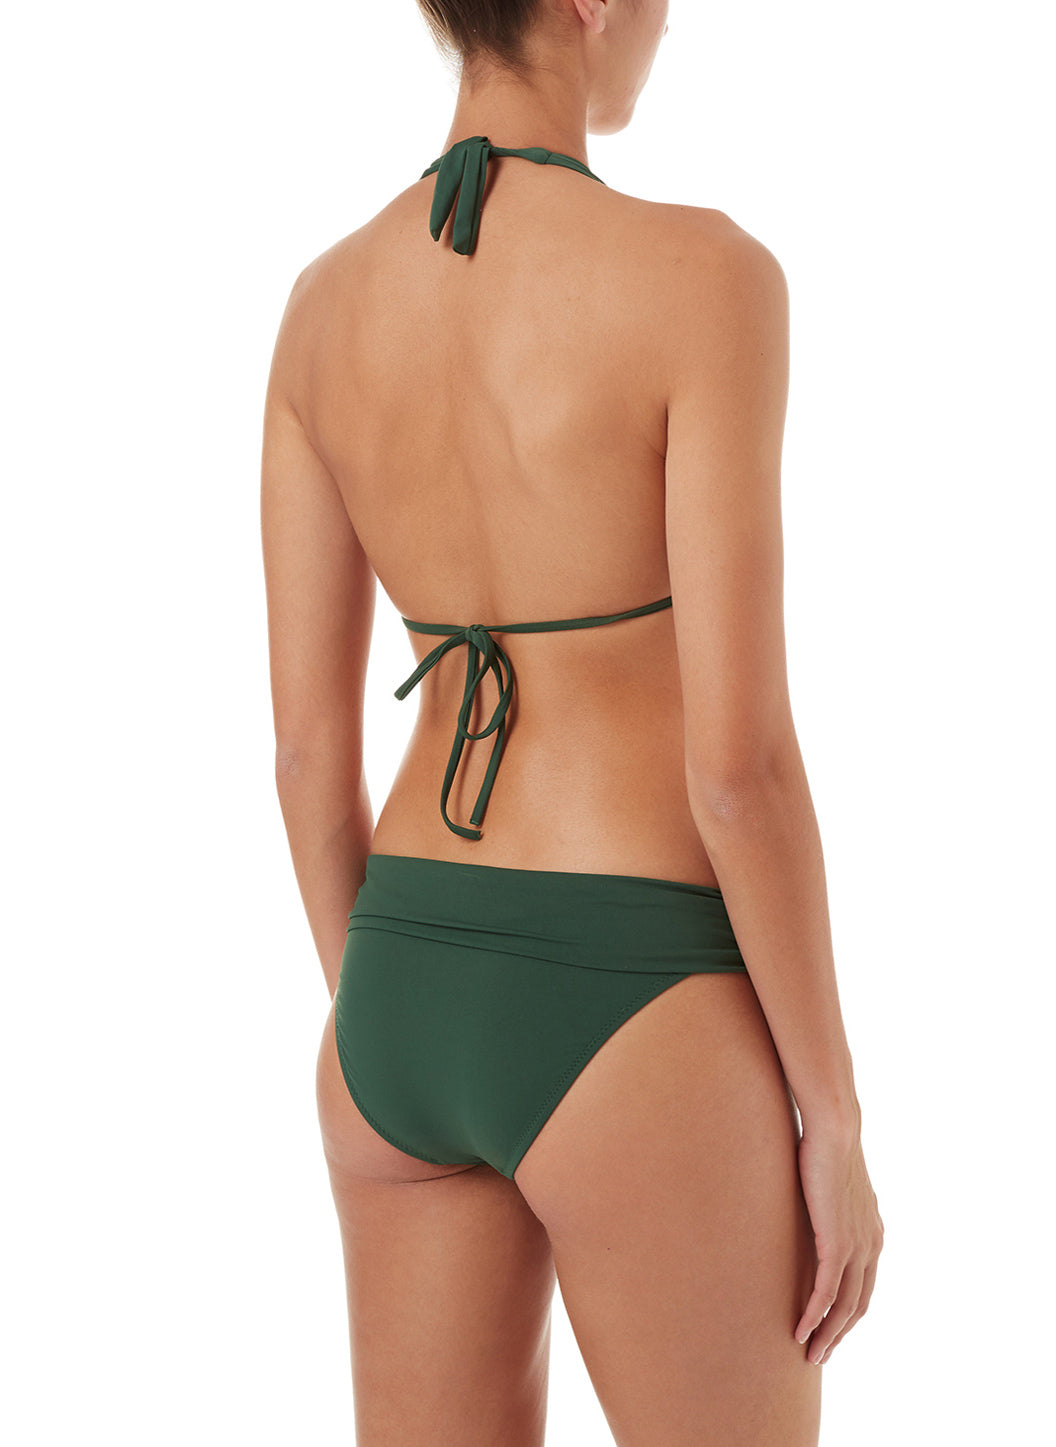 Grenada Forest Adjustable Halterneck Bikini